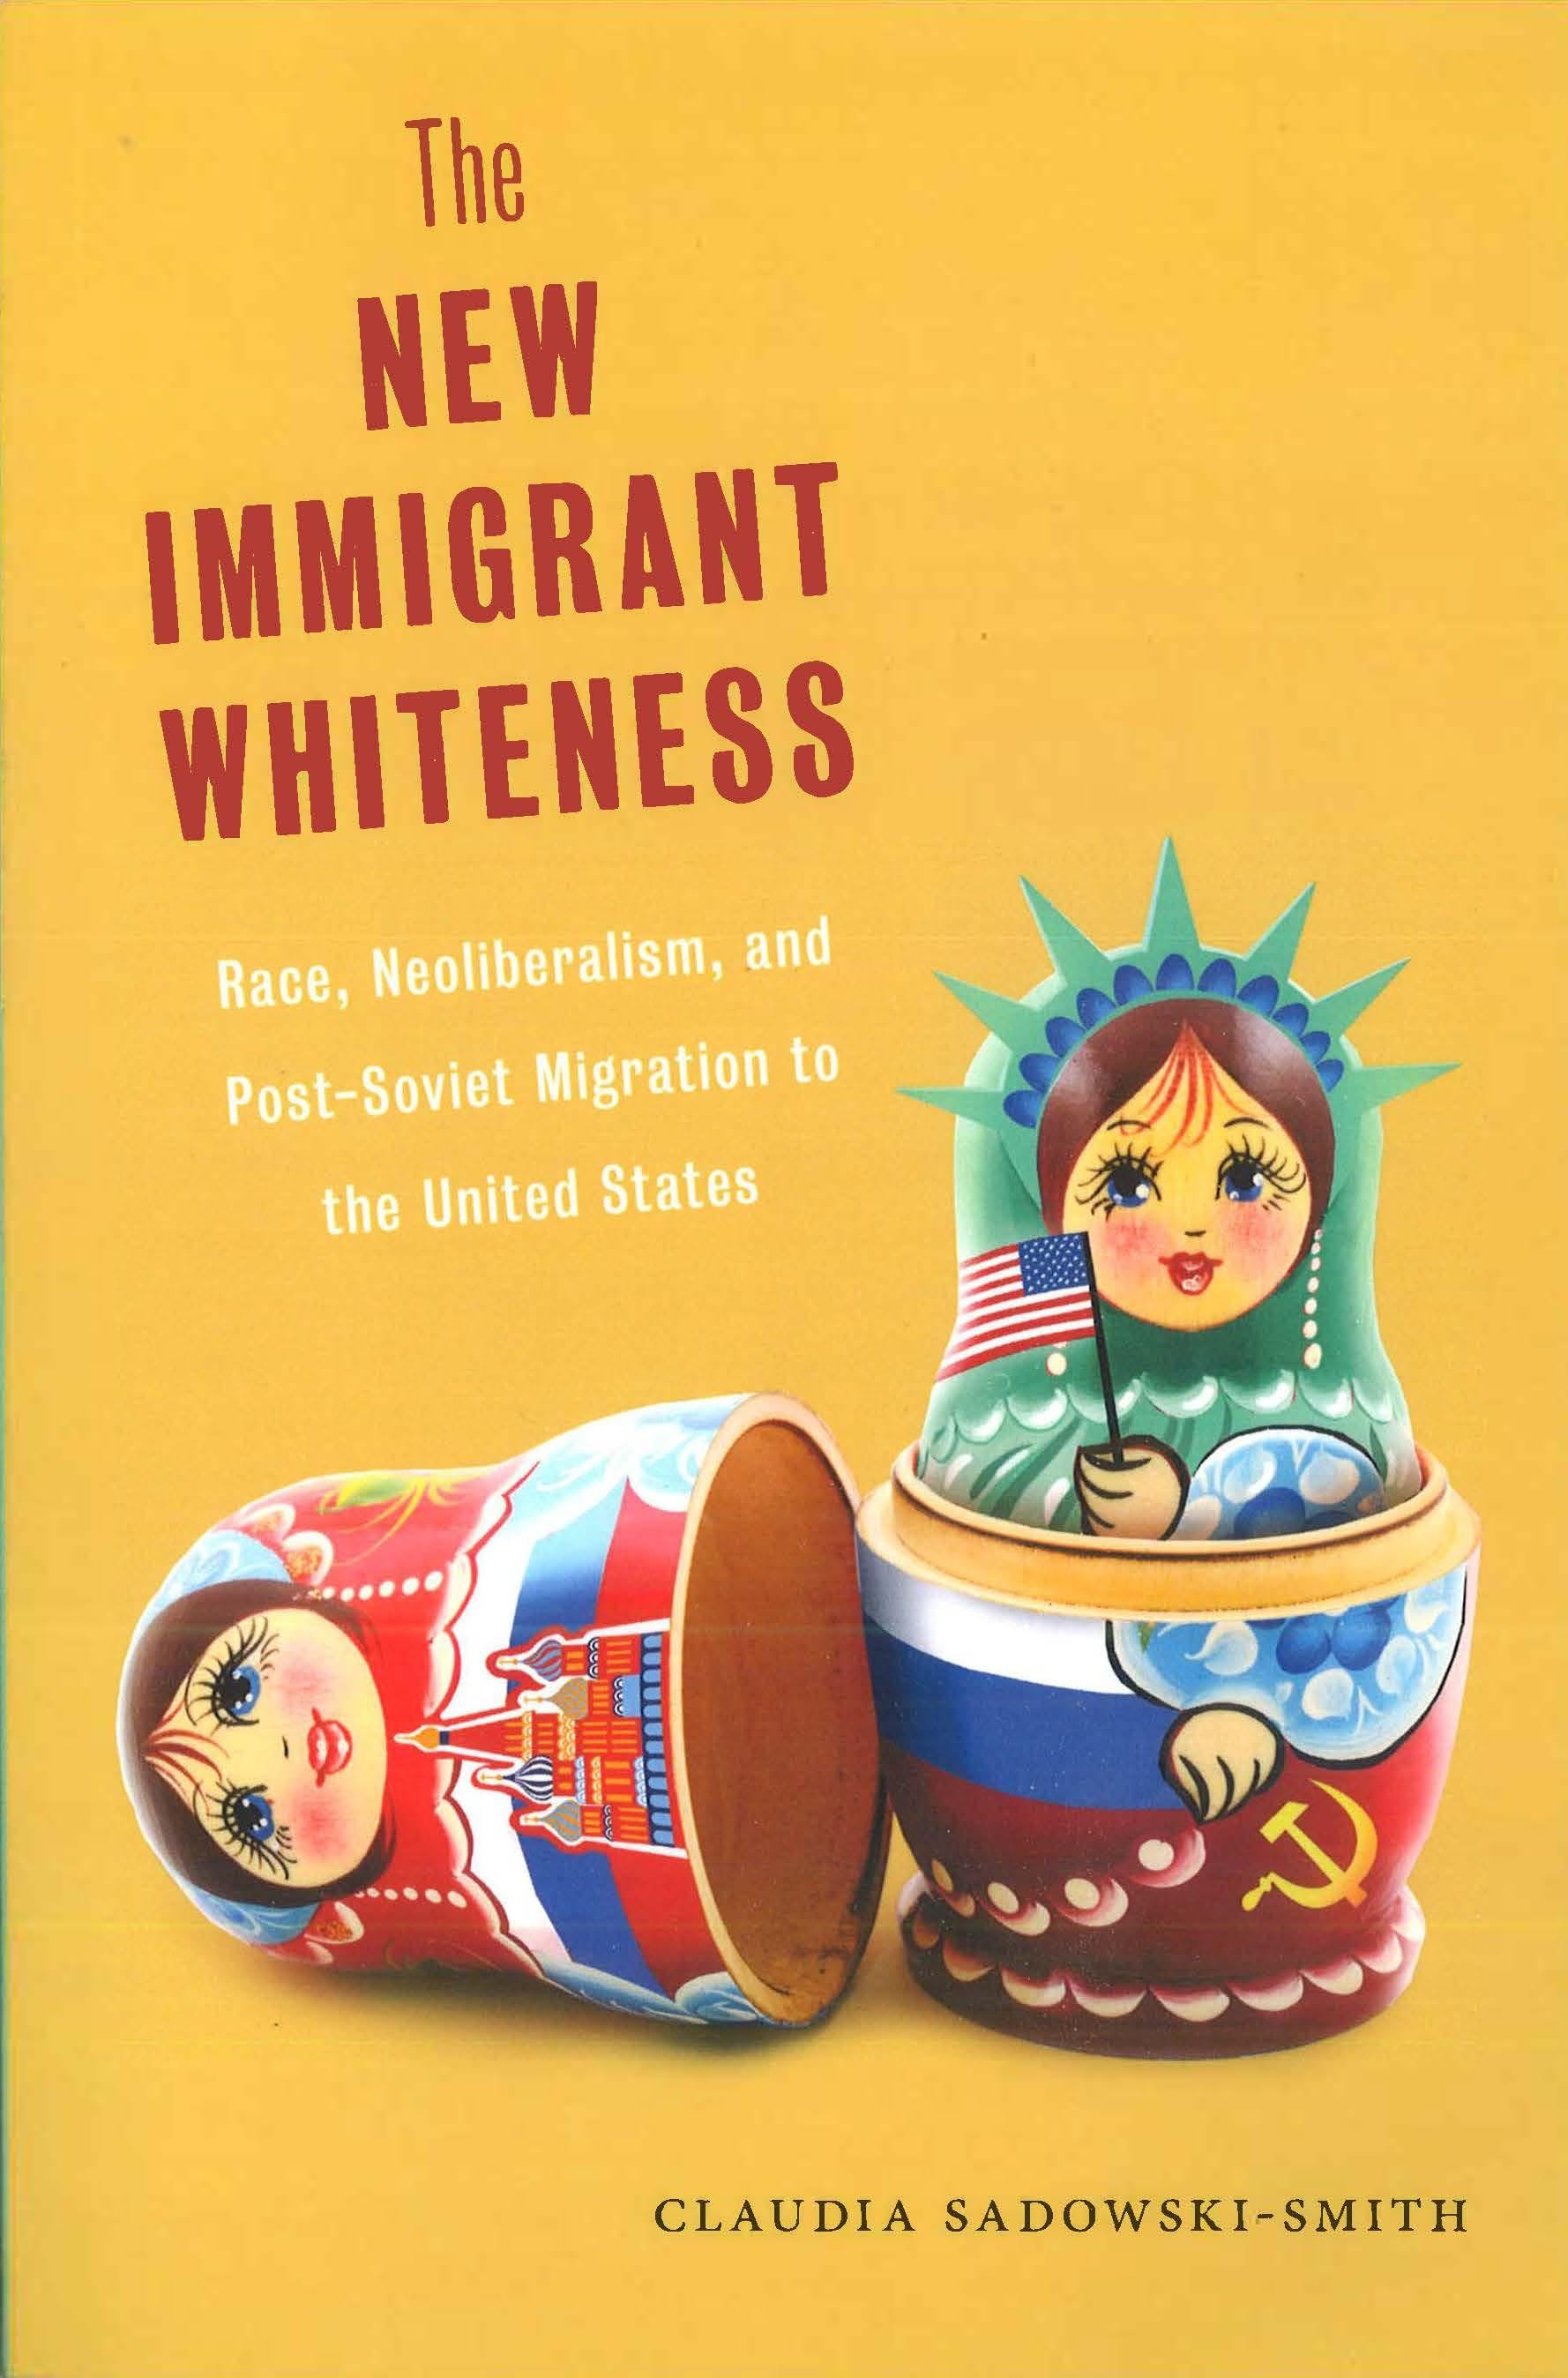 The New Immigrant Whiteness: Race, Neoliberalism, and Post-Soviet Migration in the United States